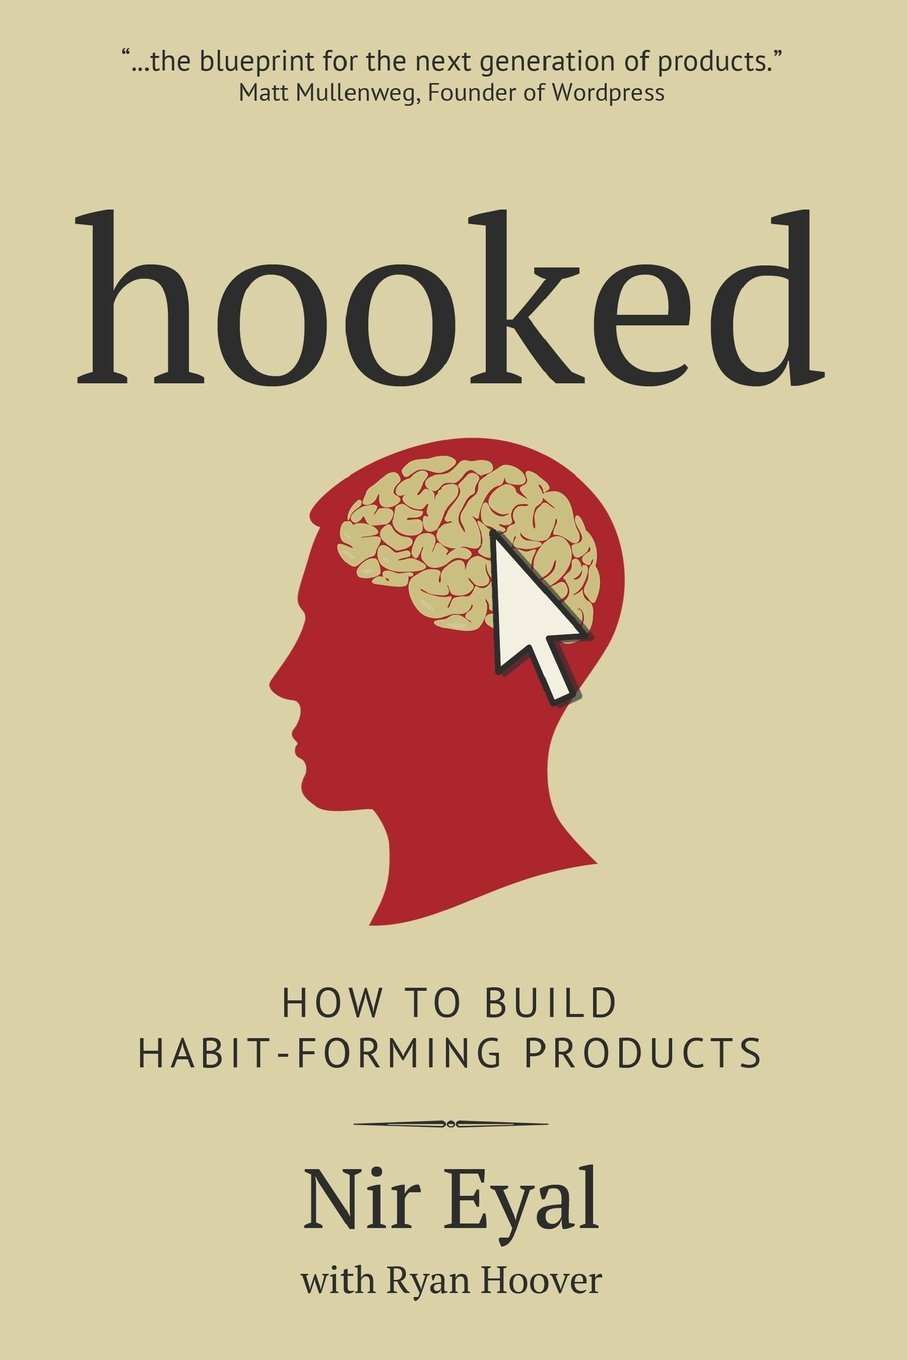 Hooked: A Guide to Building Habit-Forming Products Paperback – 26 Dec 2013